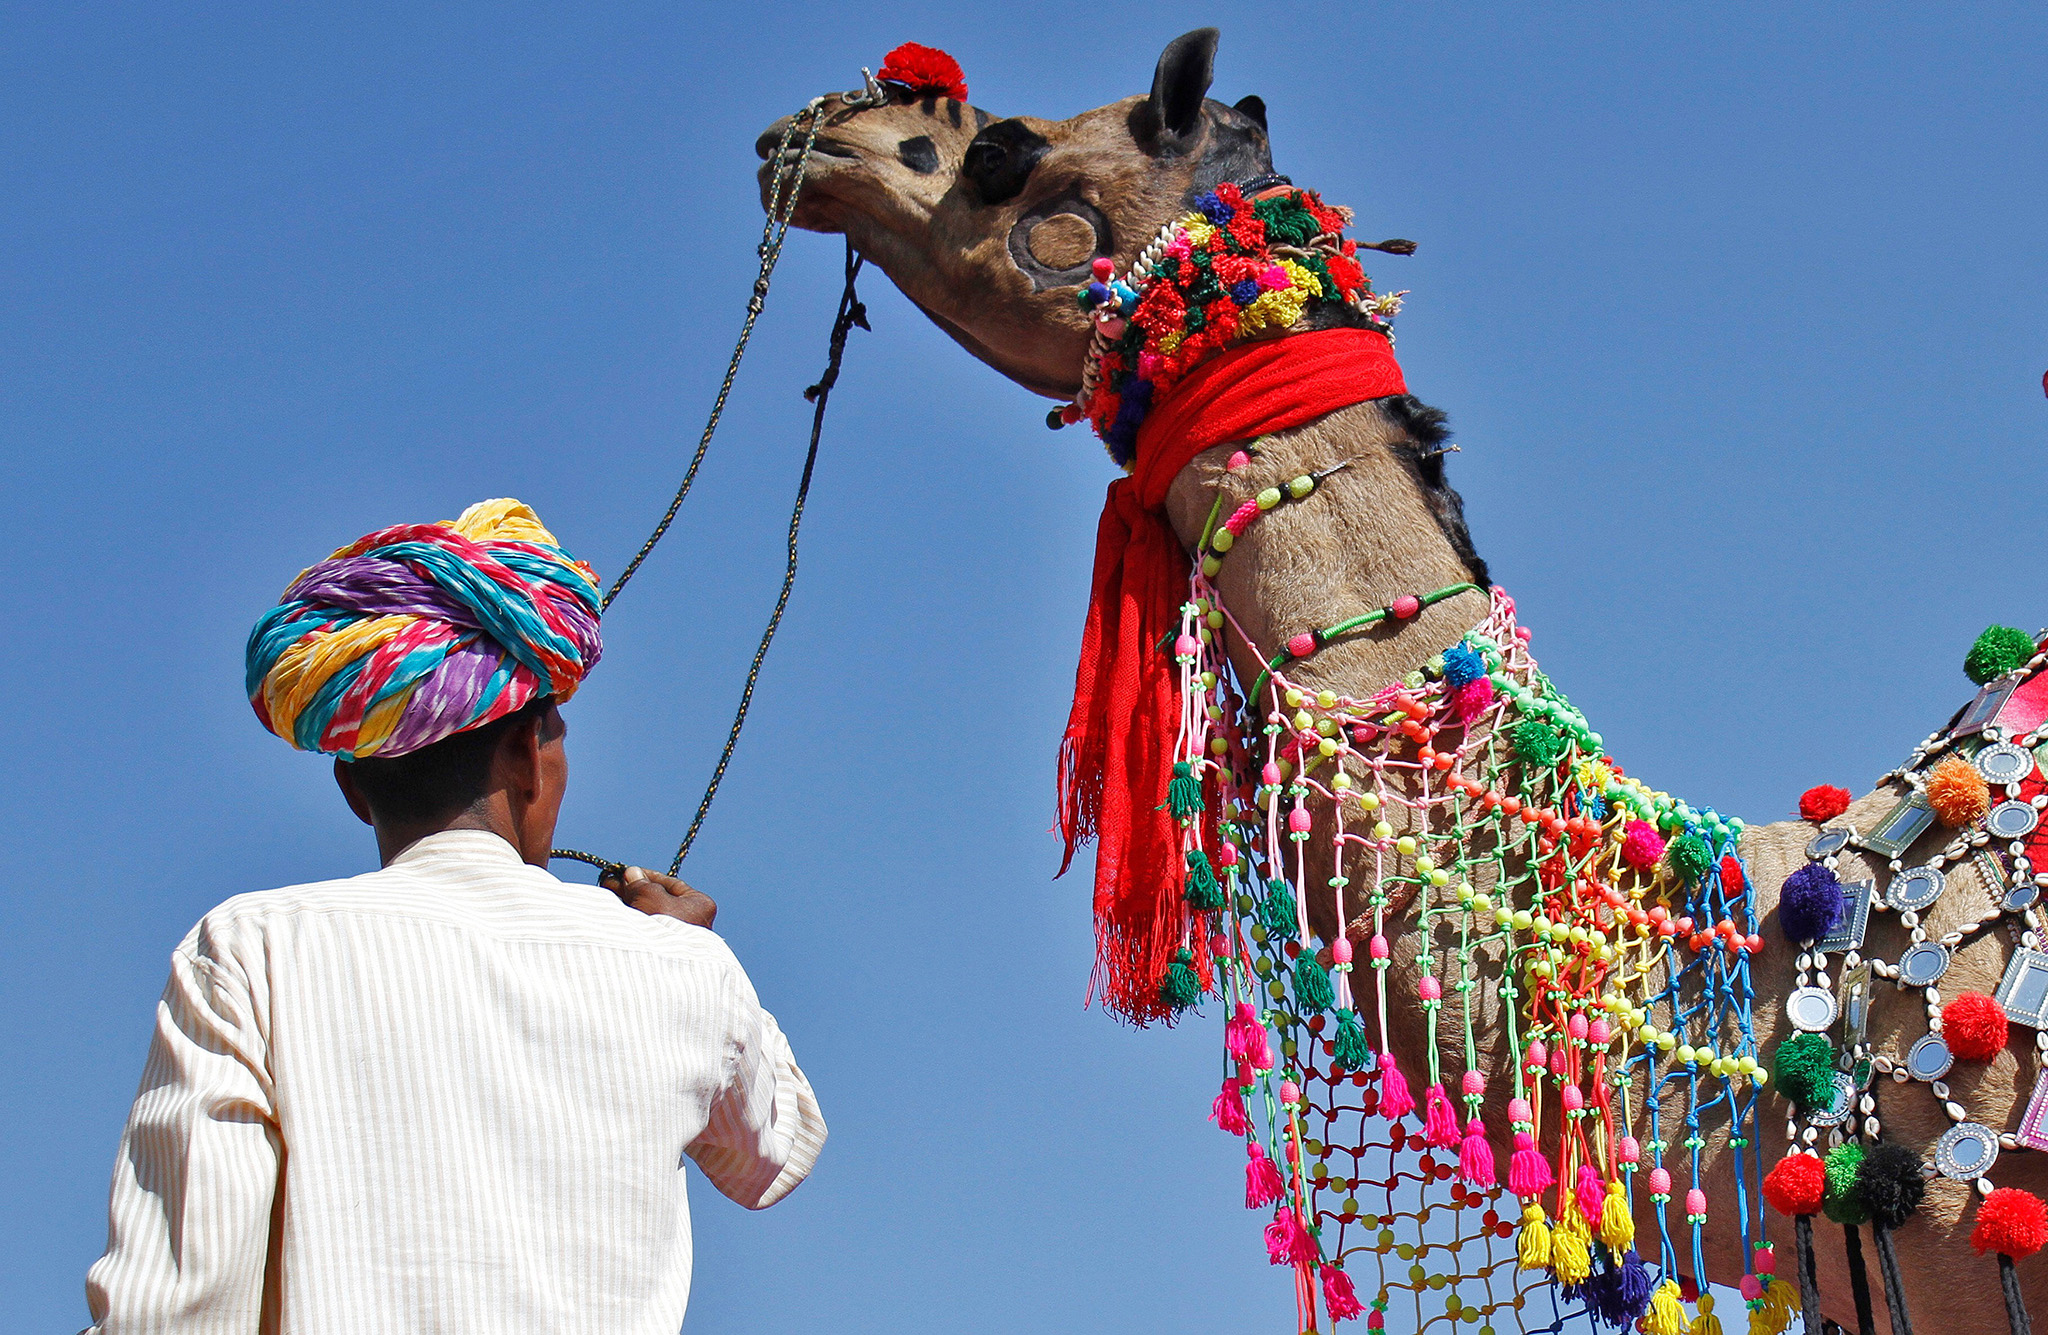 A trader displays his camel during a camel decoration competition at Pushkar Fair, where animals mainly camels are brought to be sold and traded in the desert Indian state of Rajasthan, India, November 9, 2016. REUTERS/Himanshu Sharma     TPX IMAGES OF THE DAY